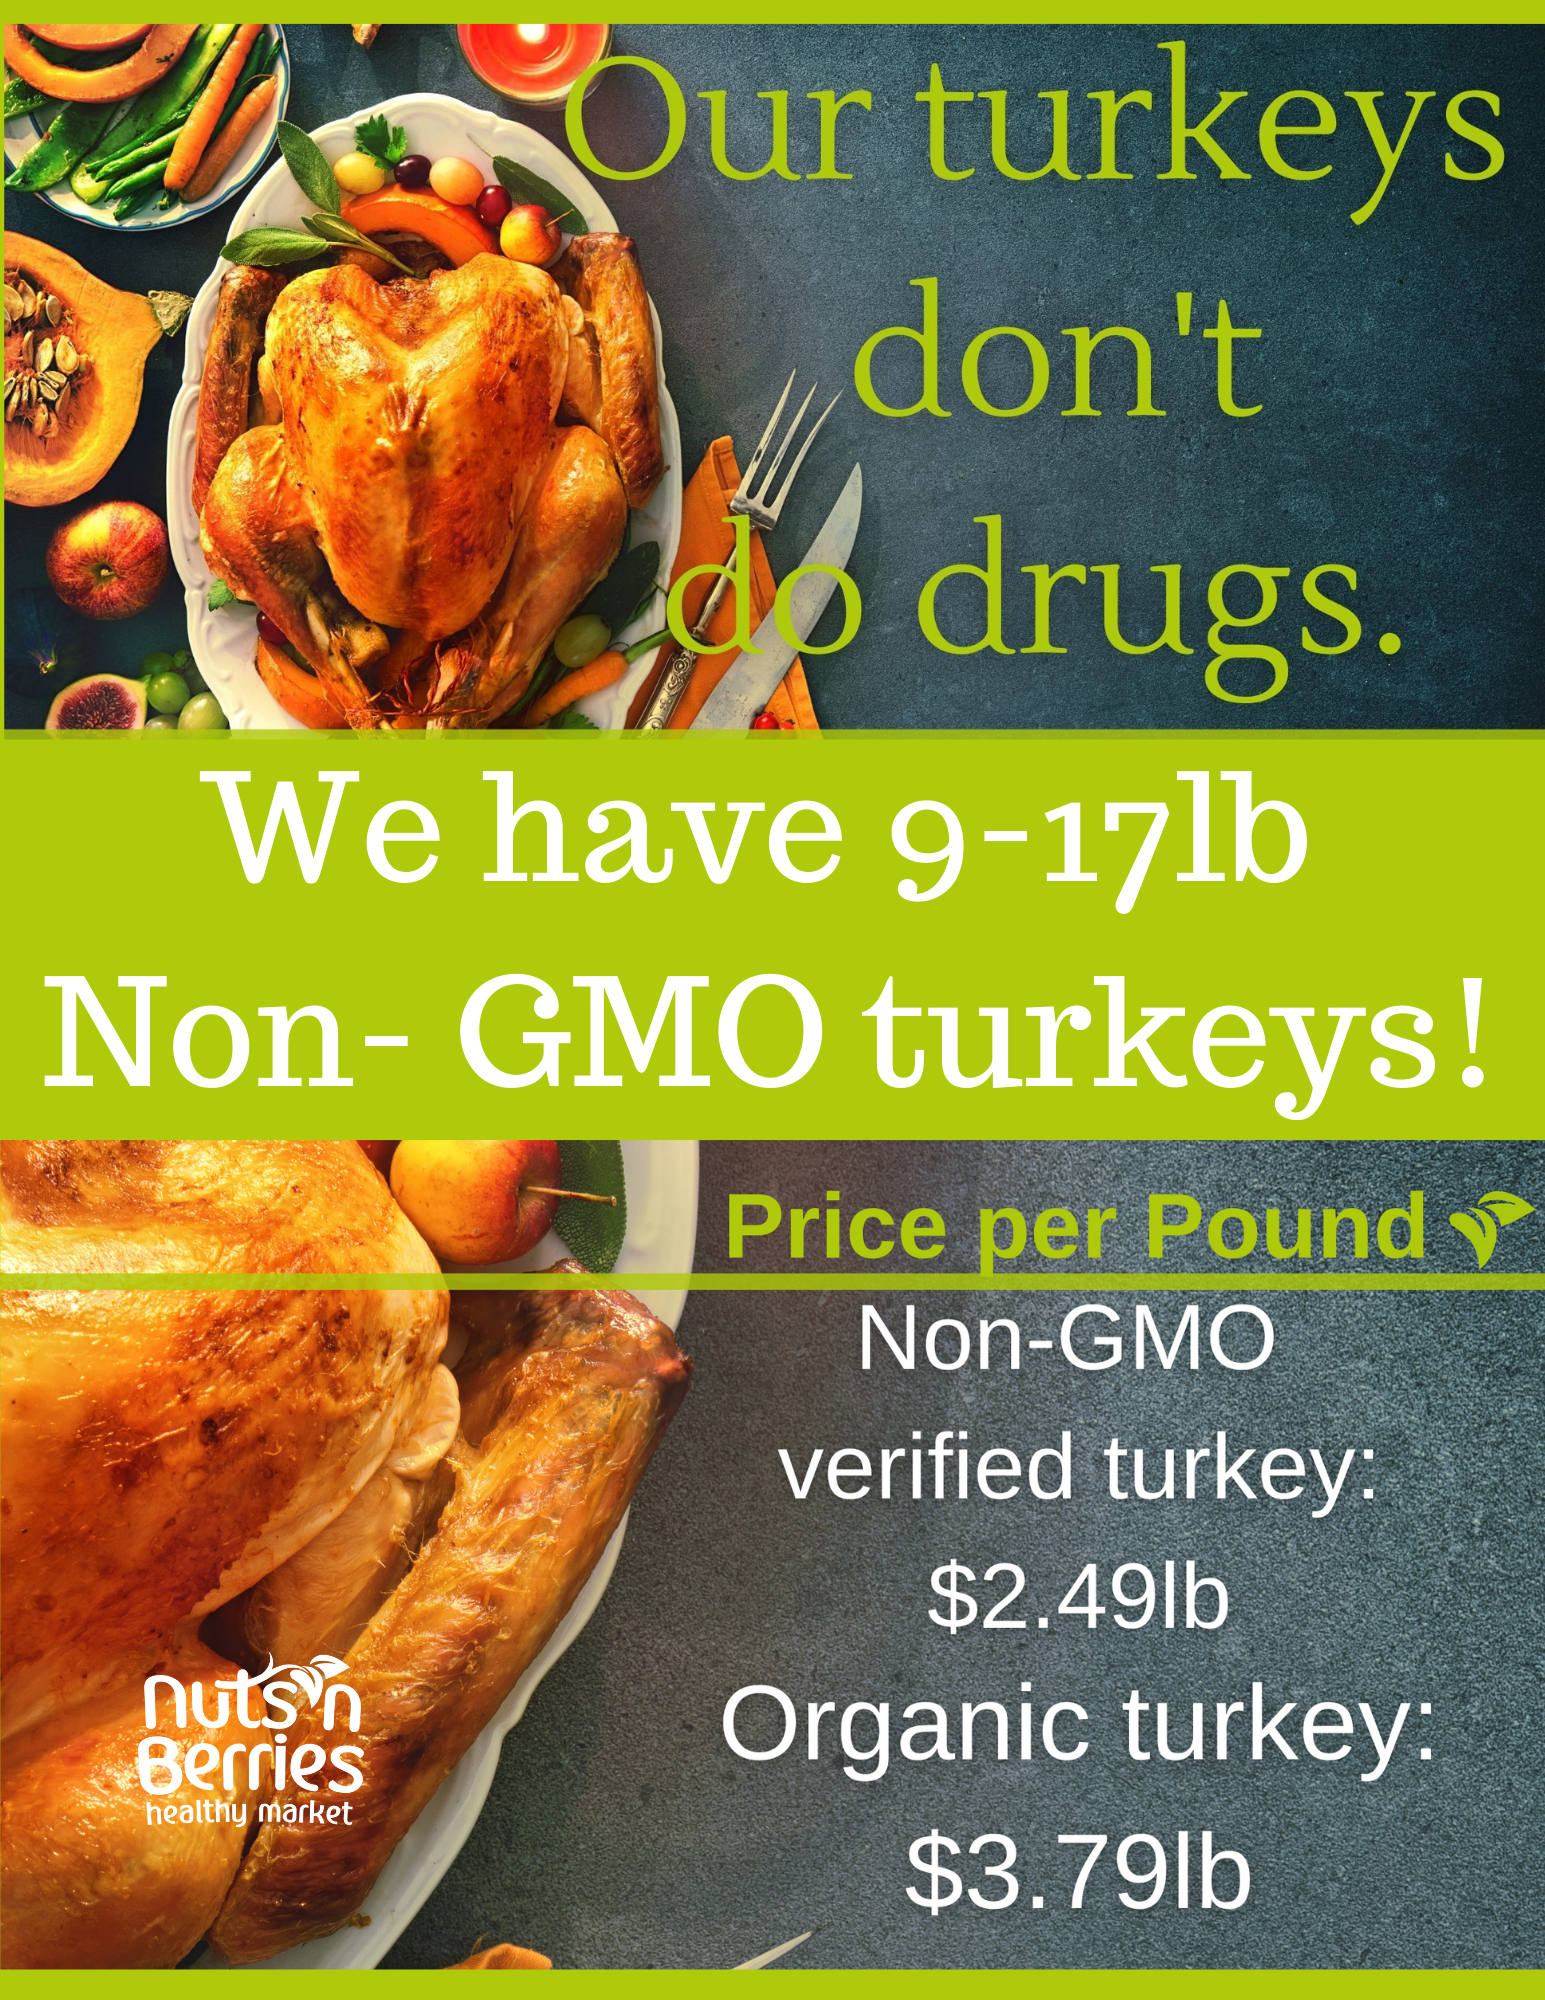 Page that tells customers about our turkeys for sale, how much they cost, and how to order them.